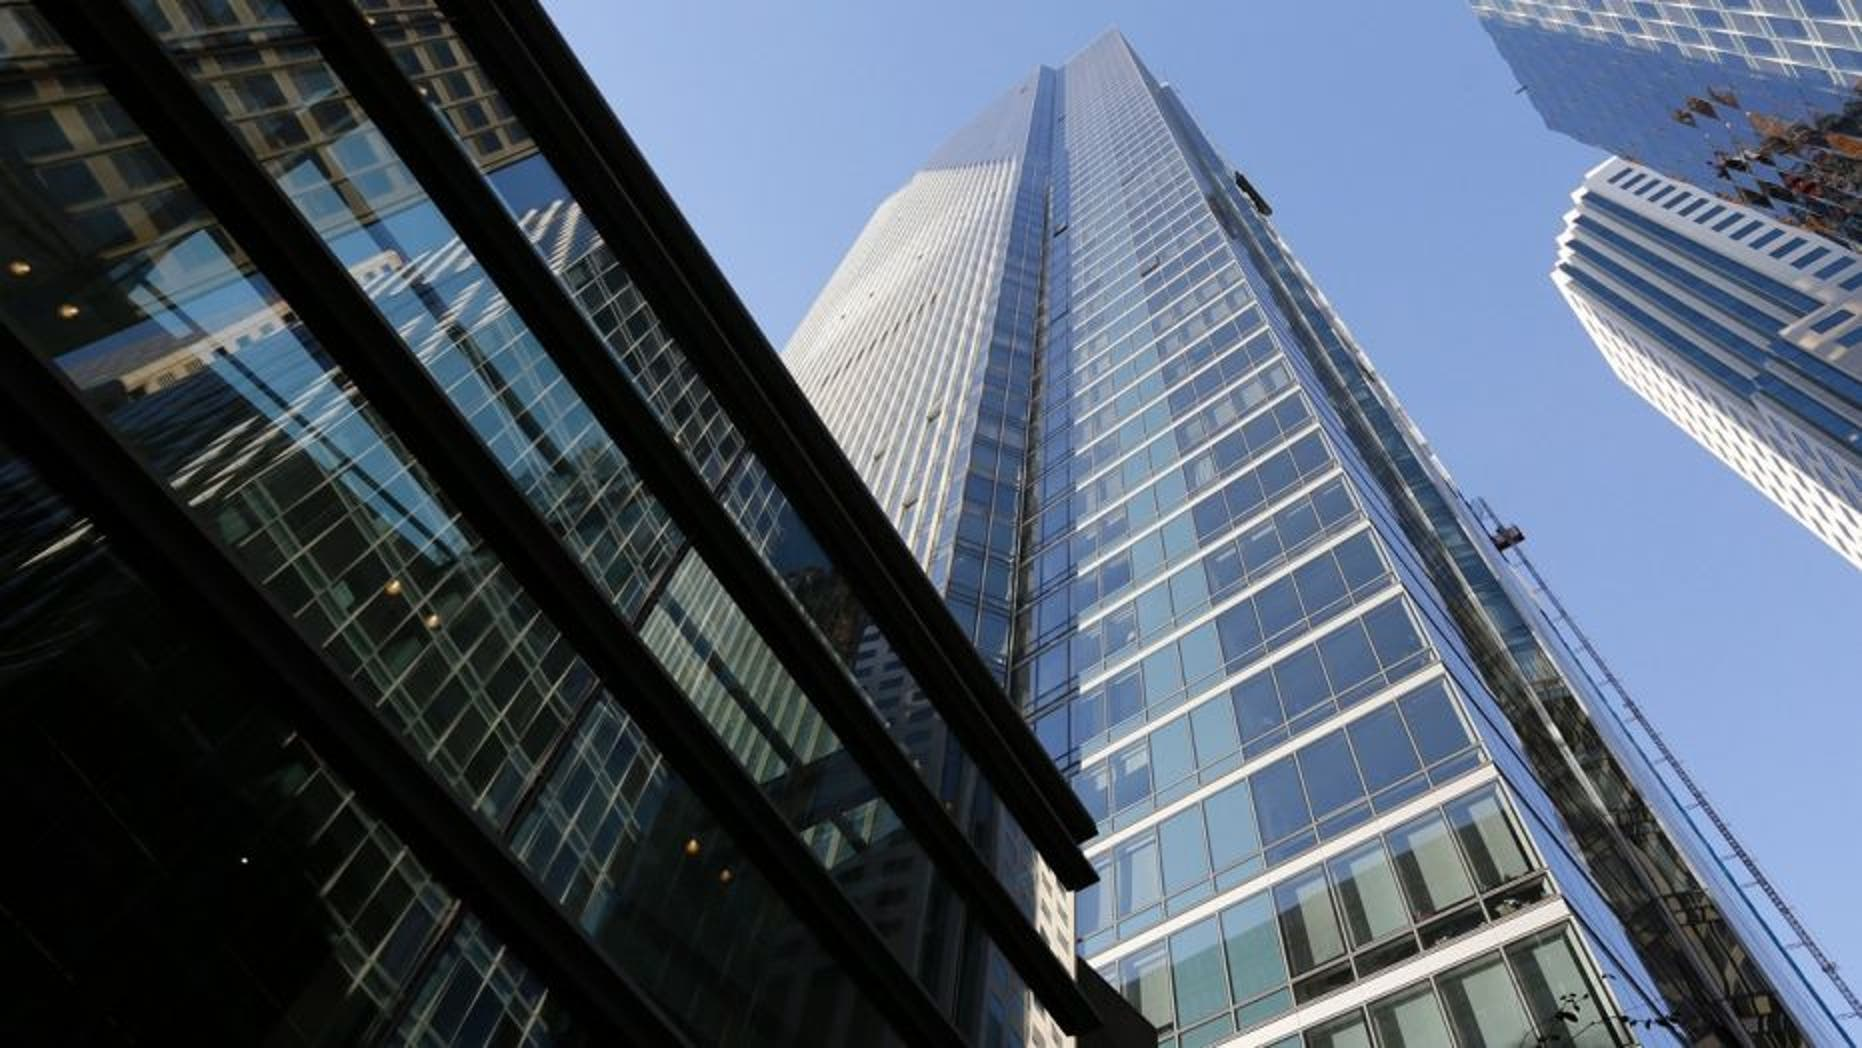 The Millennium Tower has been hit with multiple lawsuits by residents since its opening in 2009.